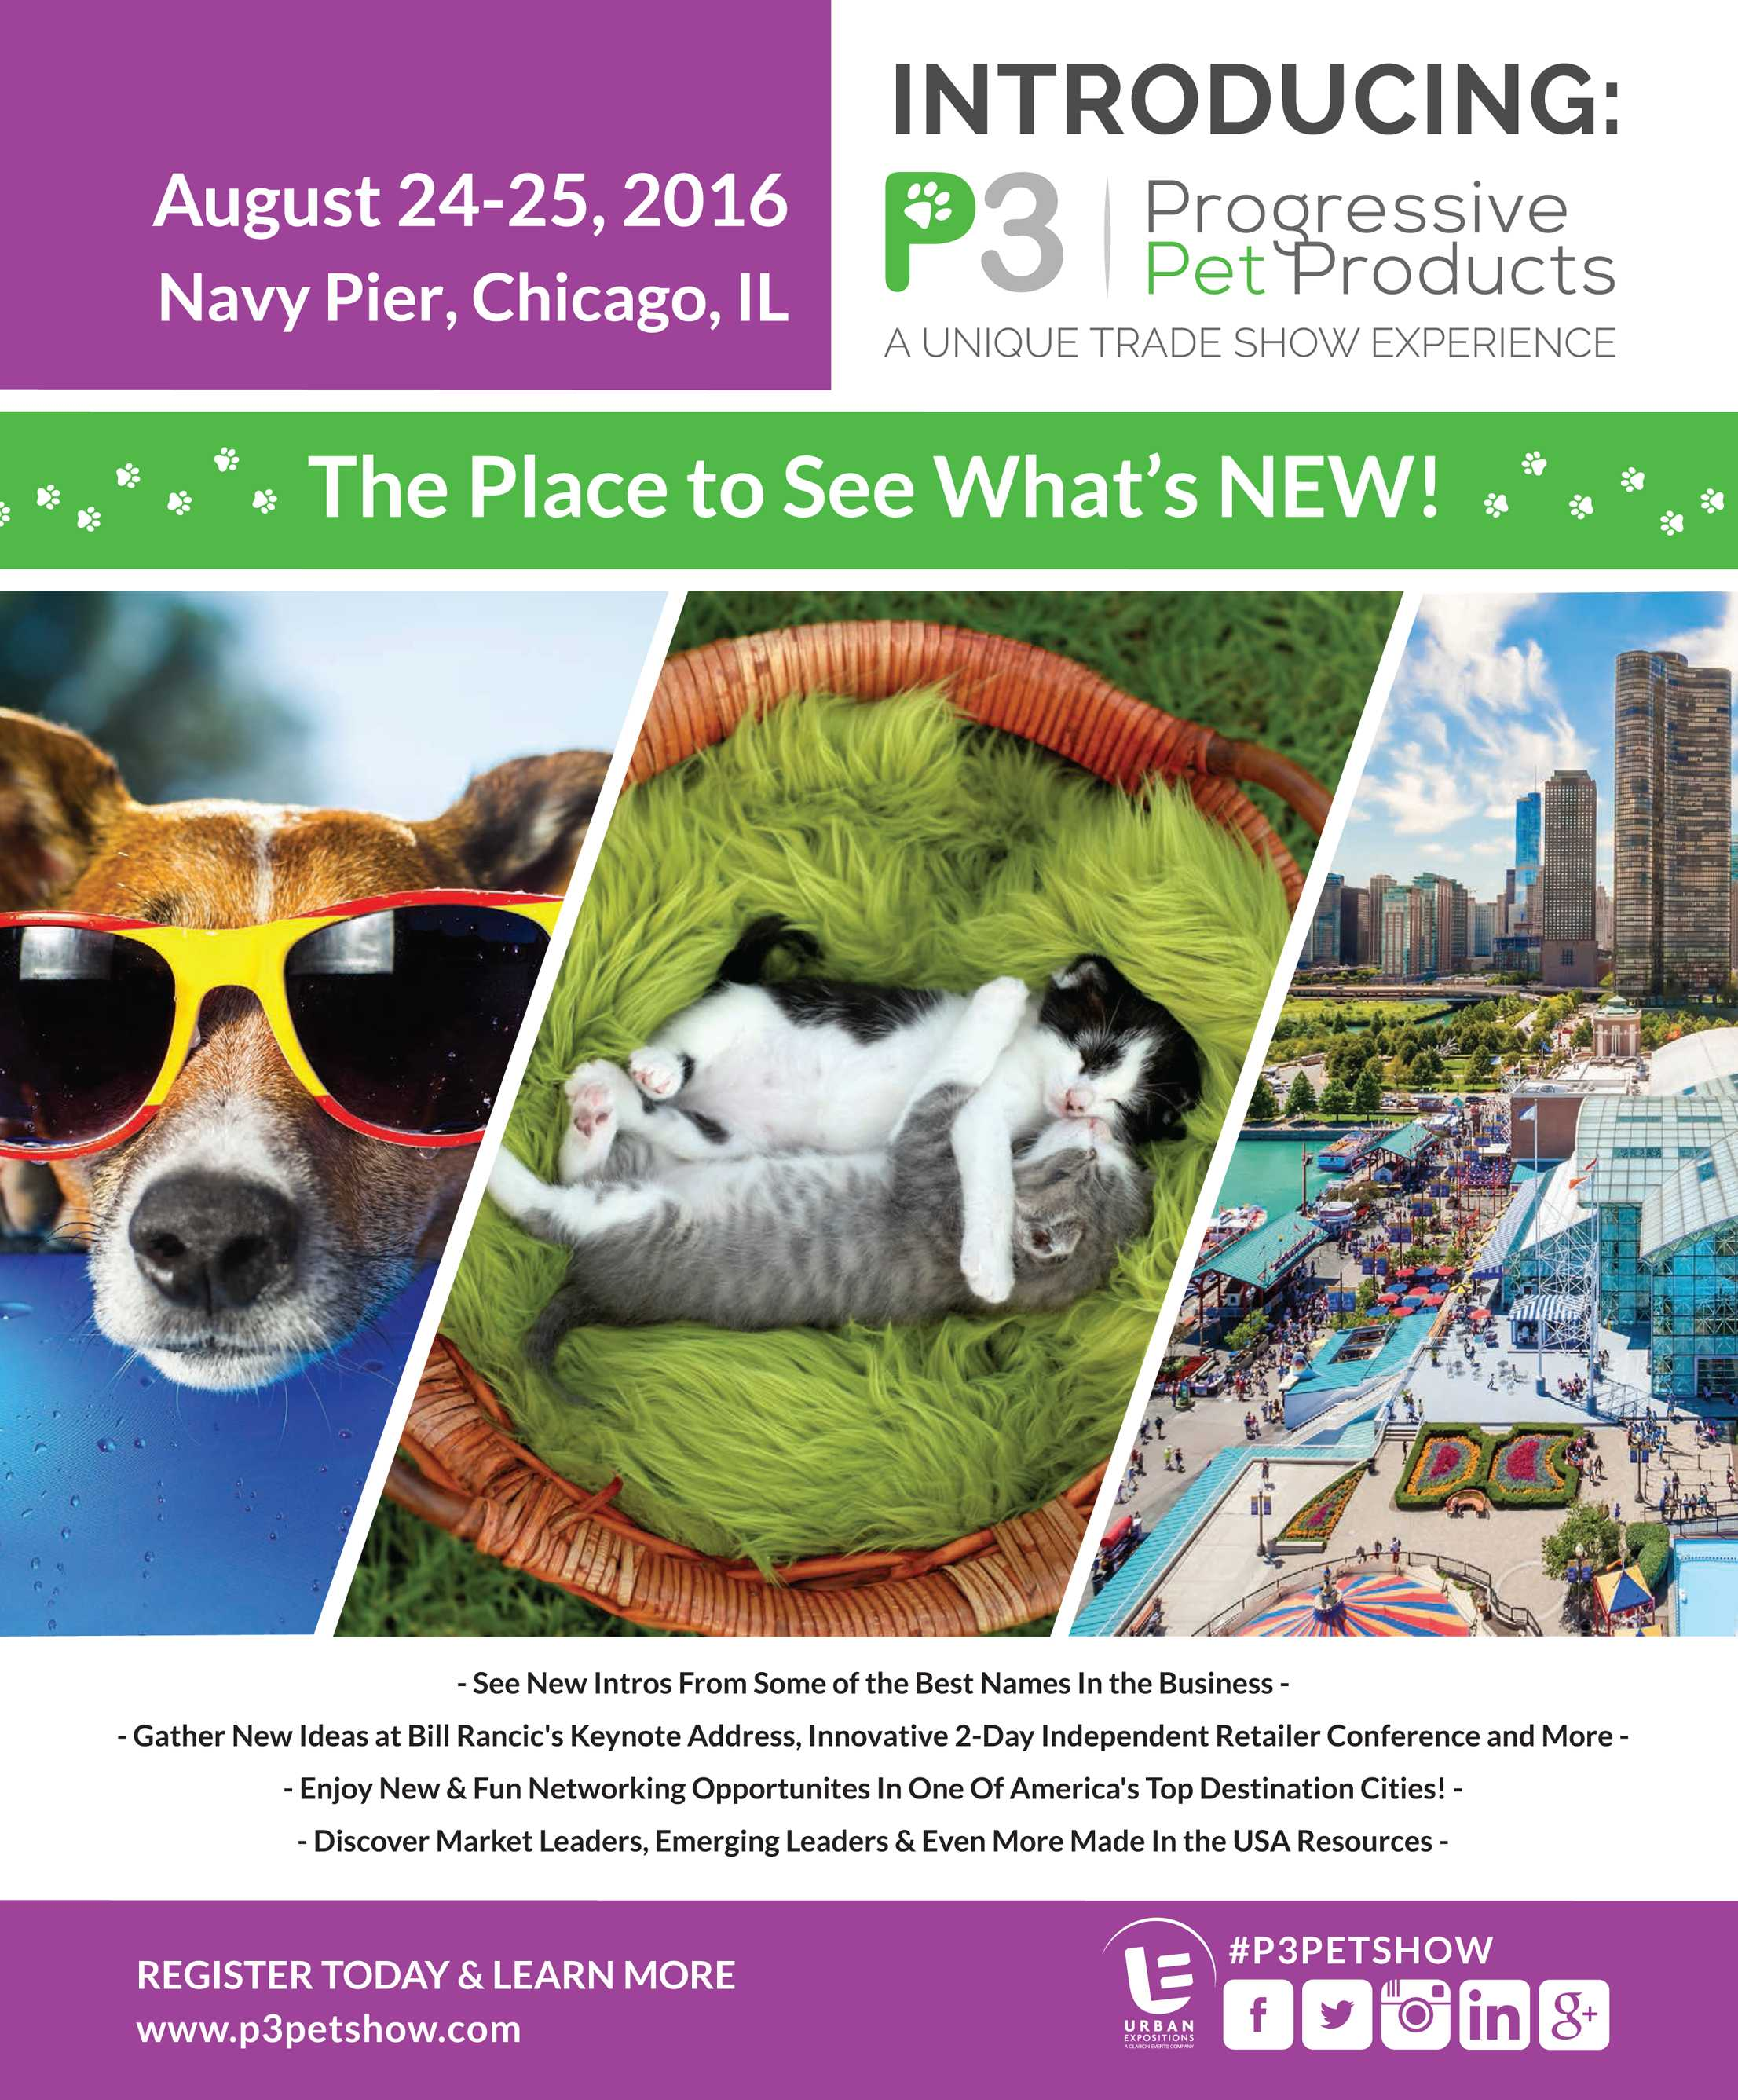 Pet Business - July 2016 - page 35